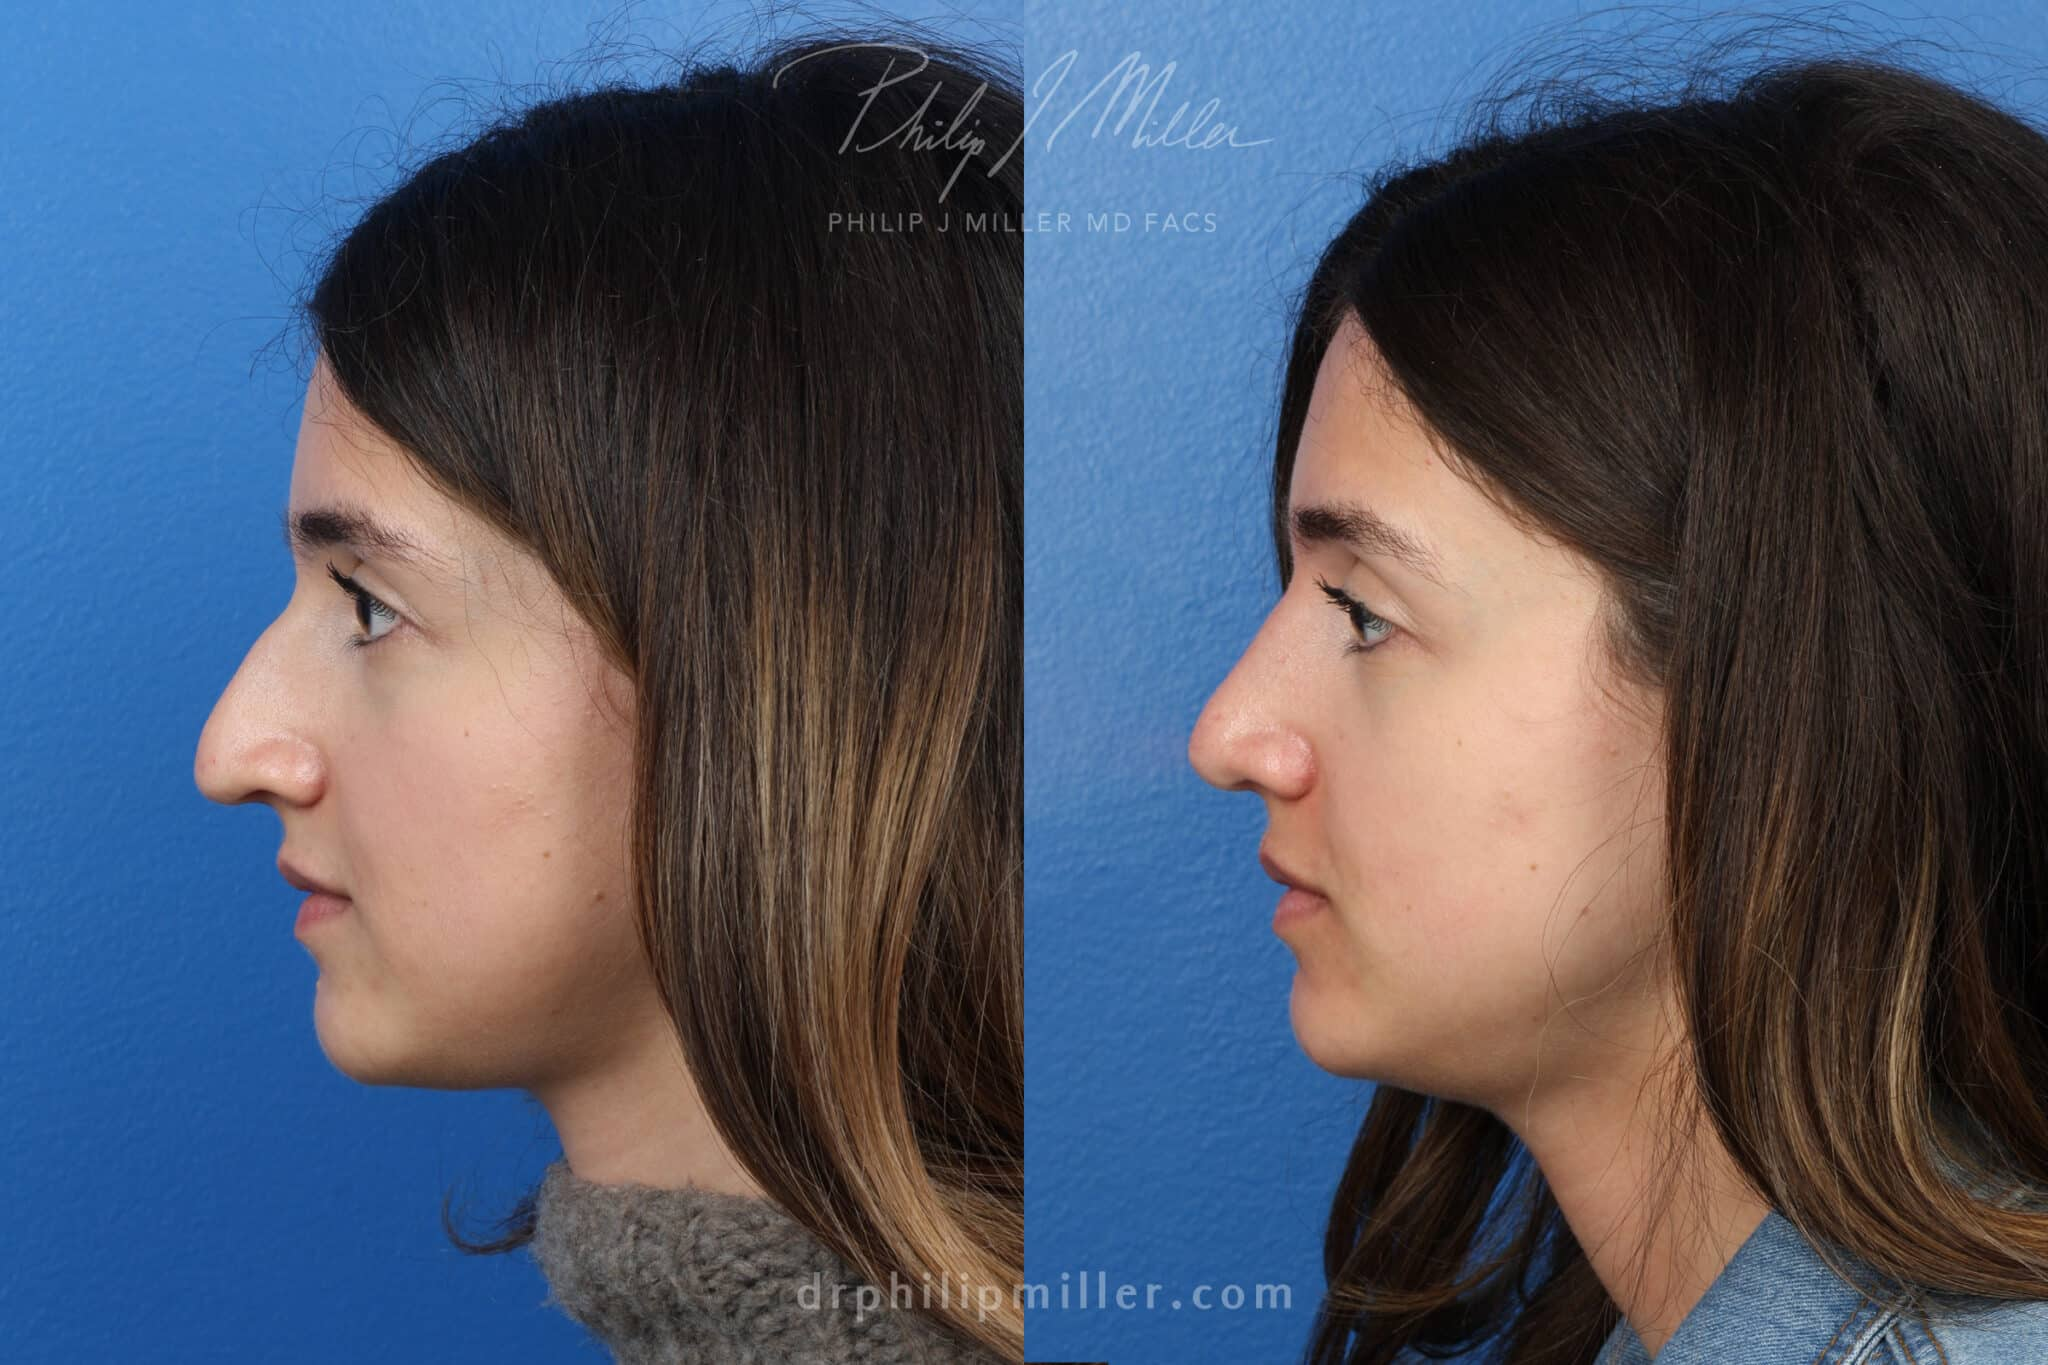 Rhinoplasty to remove hump from nasal bridge, three months later, by Dr. Miller